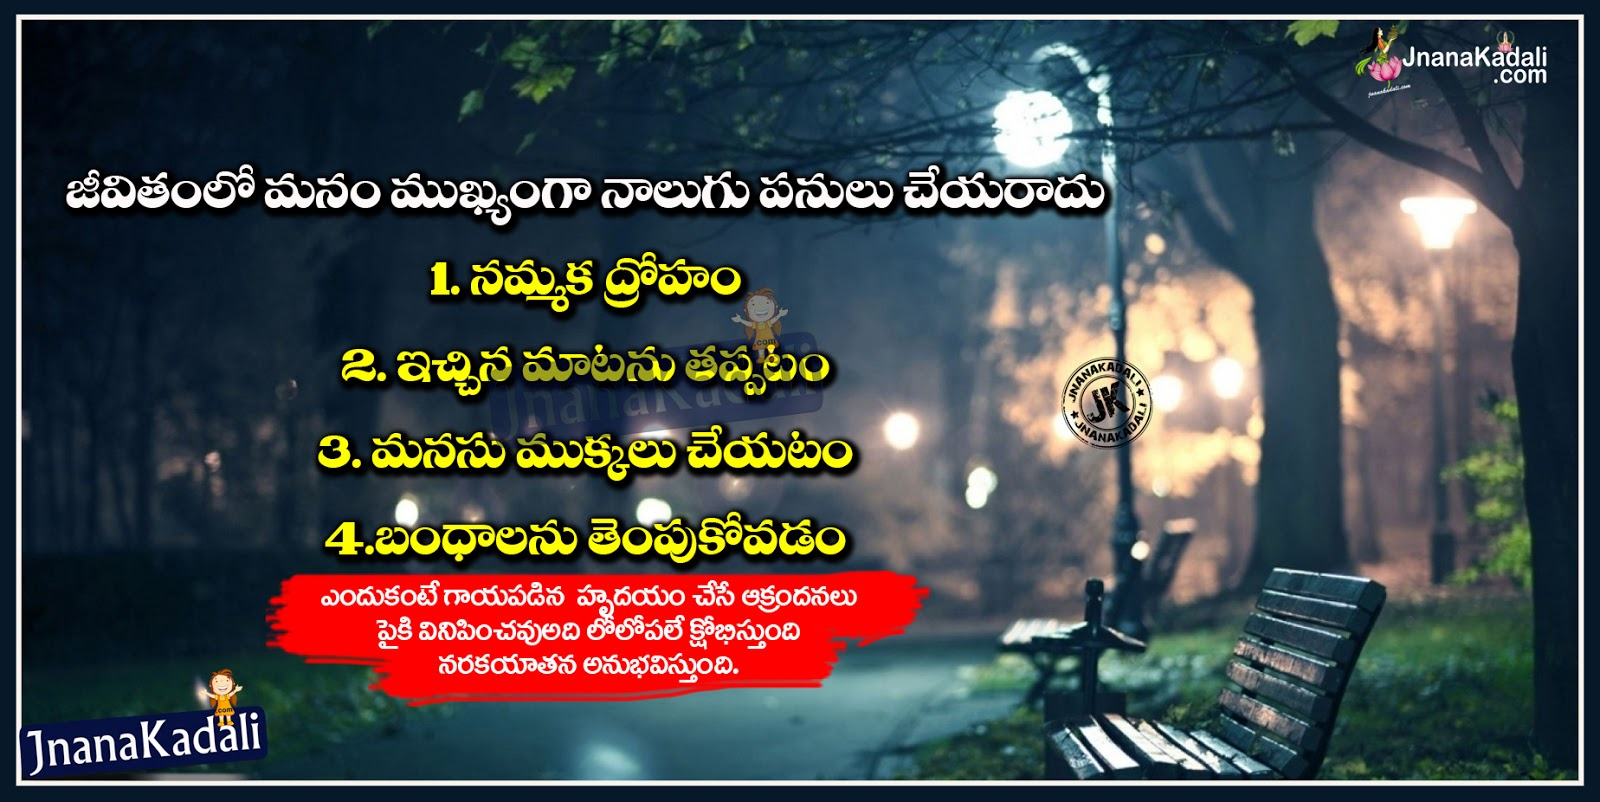 Here is Famous Telugu Top Inspirational Quotes Alone Quotes feelings images Top Telugu Love Quotes